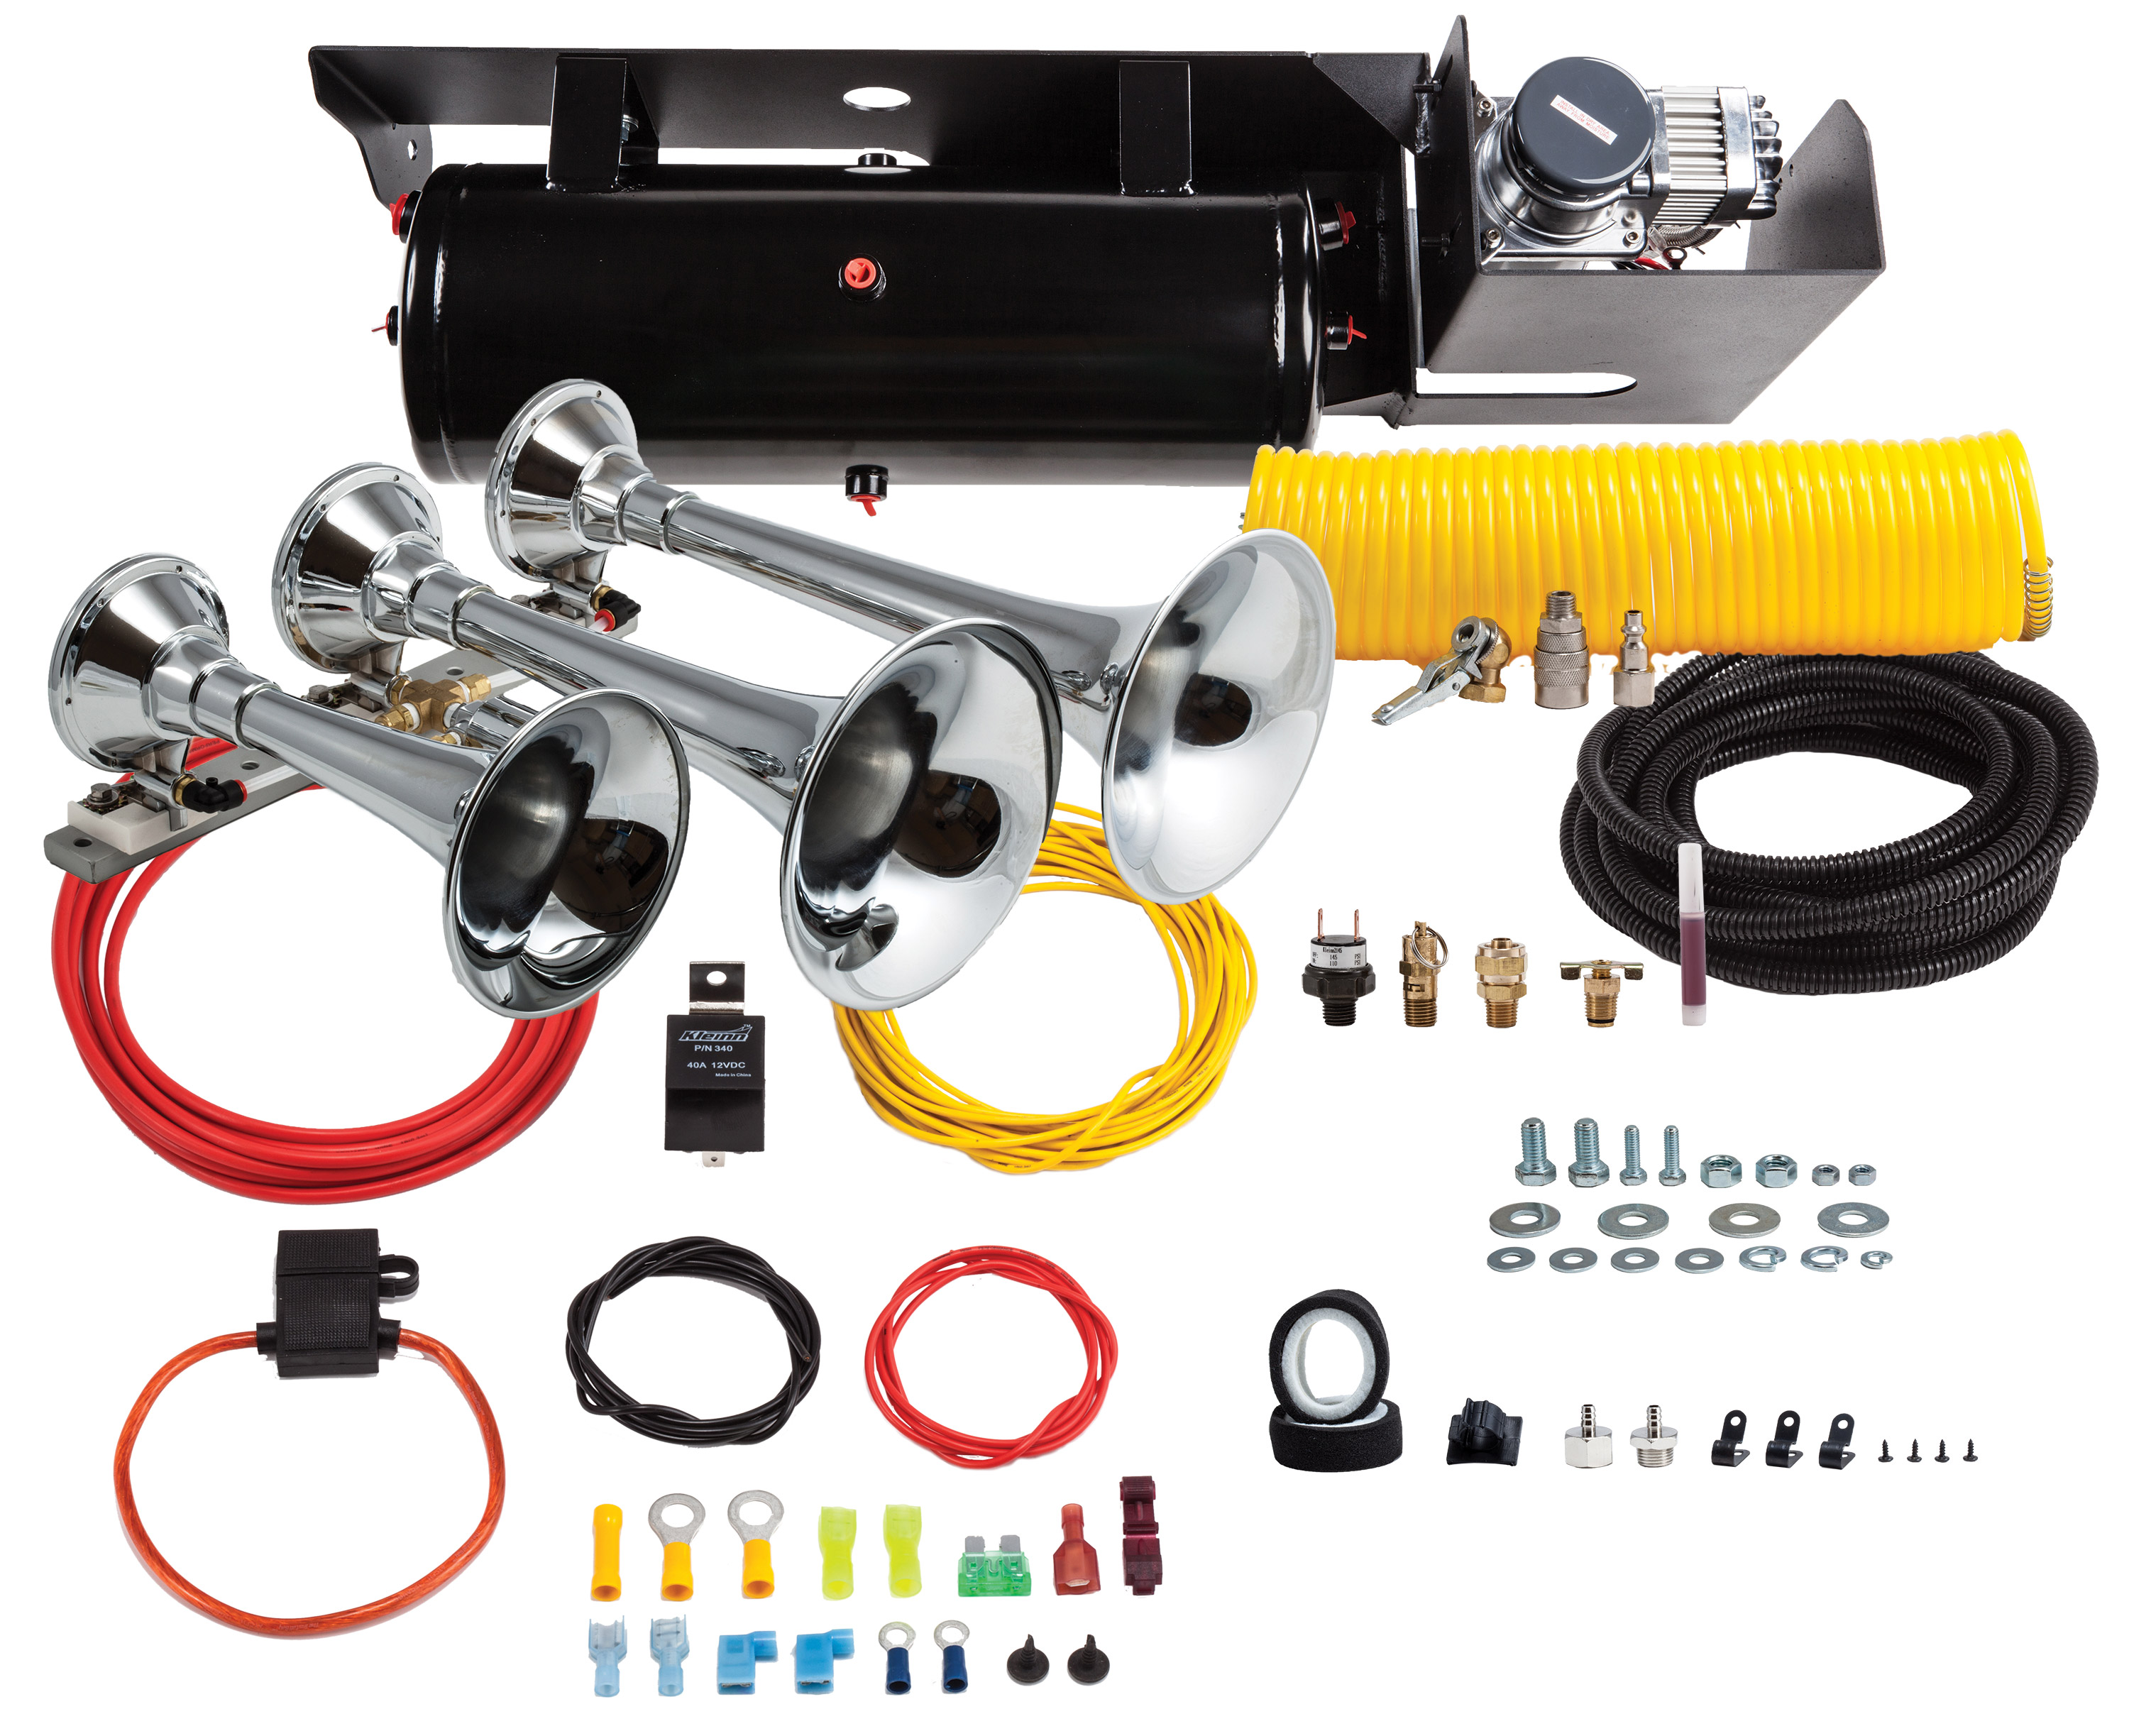 Super Duty Kit SDKIT-630 For 2011 - 2015 Ford F250 and F350